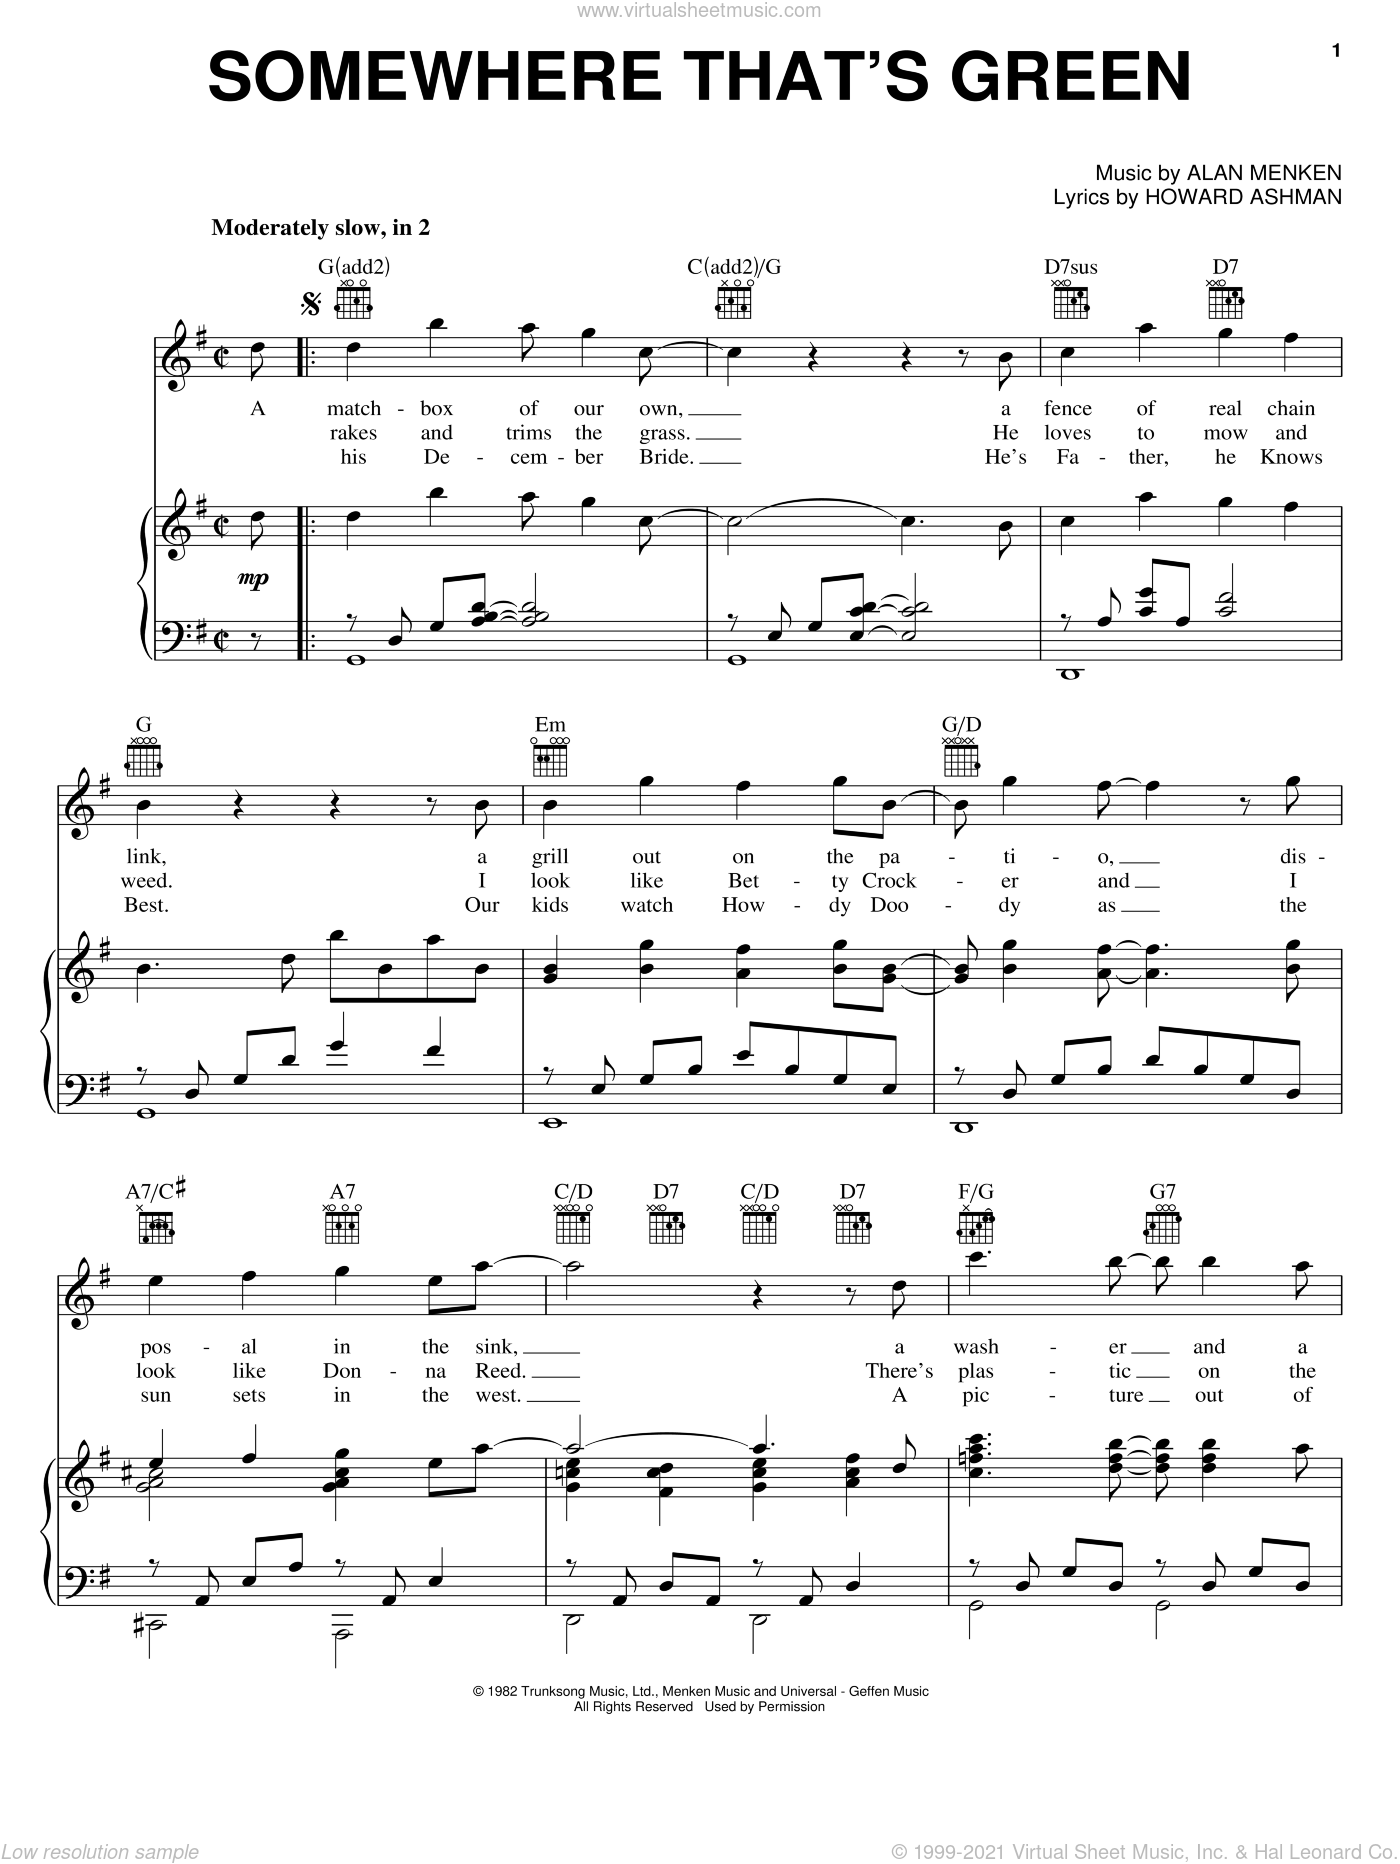 Somewhere That's Green sheet music for voice, piano or guitar by Alan Menken